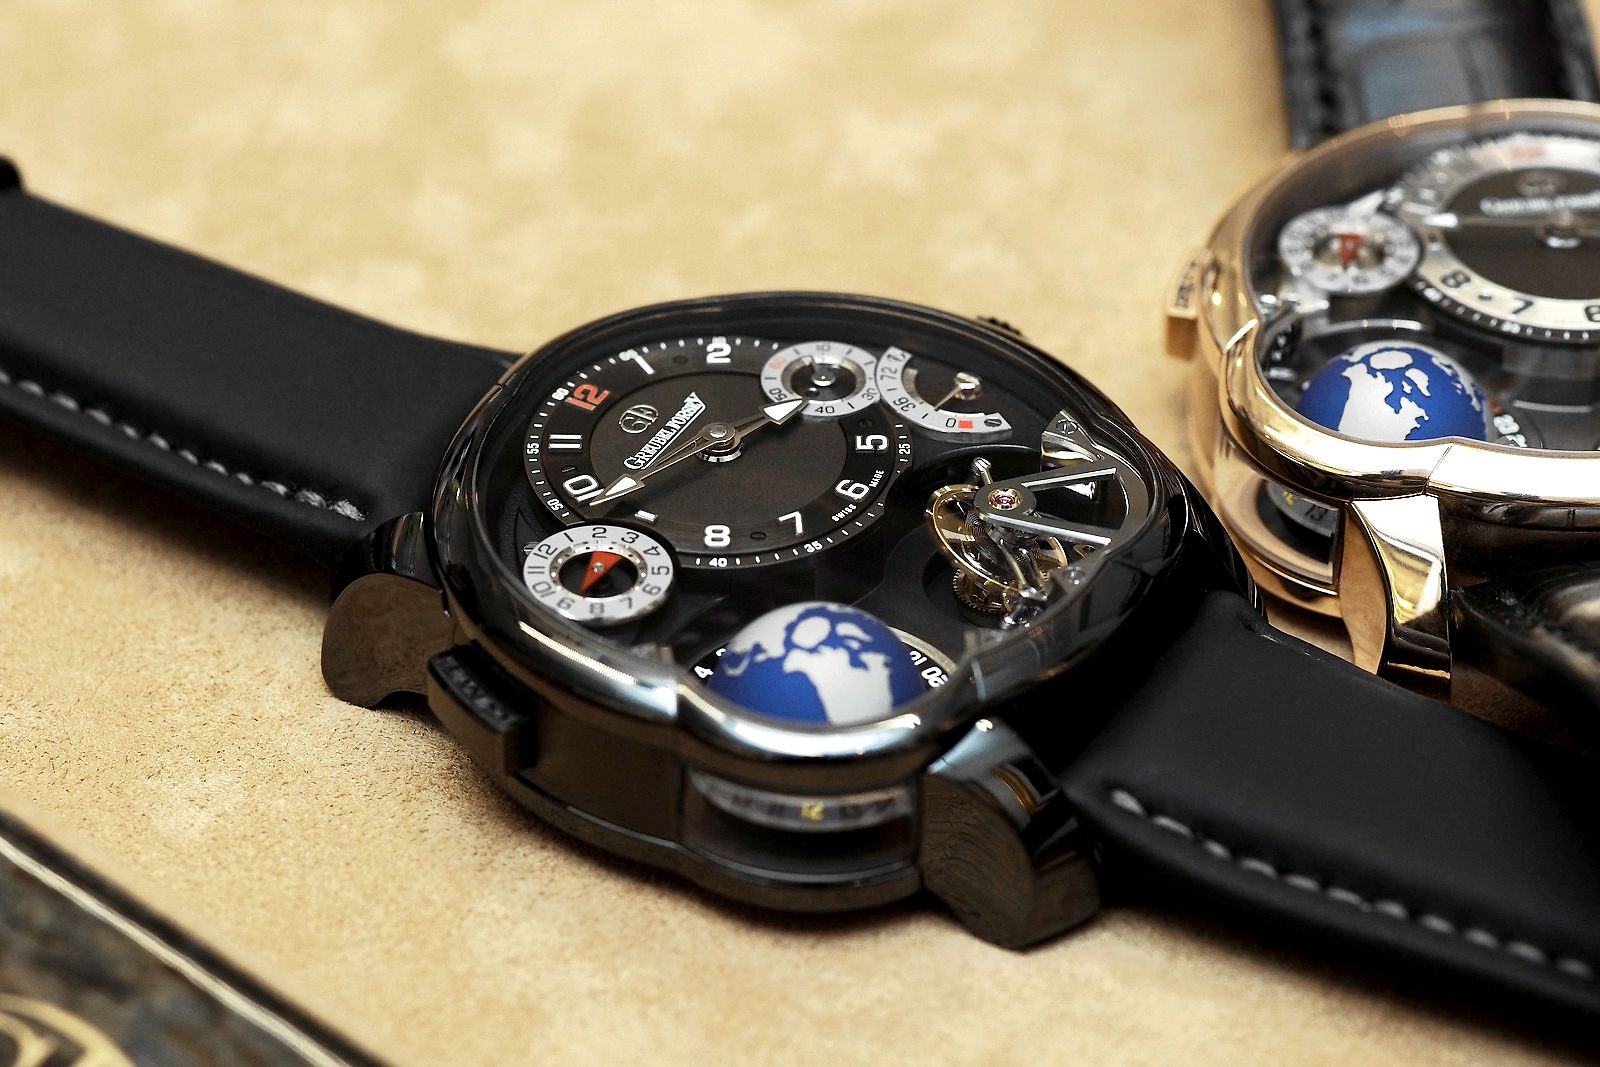 Greubel-Forsey-GMT-Black-and-Gold-4_DxO.jpg